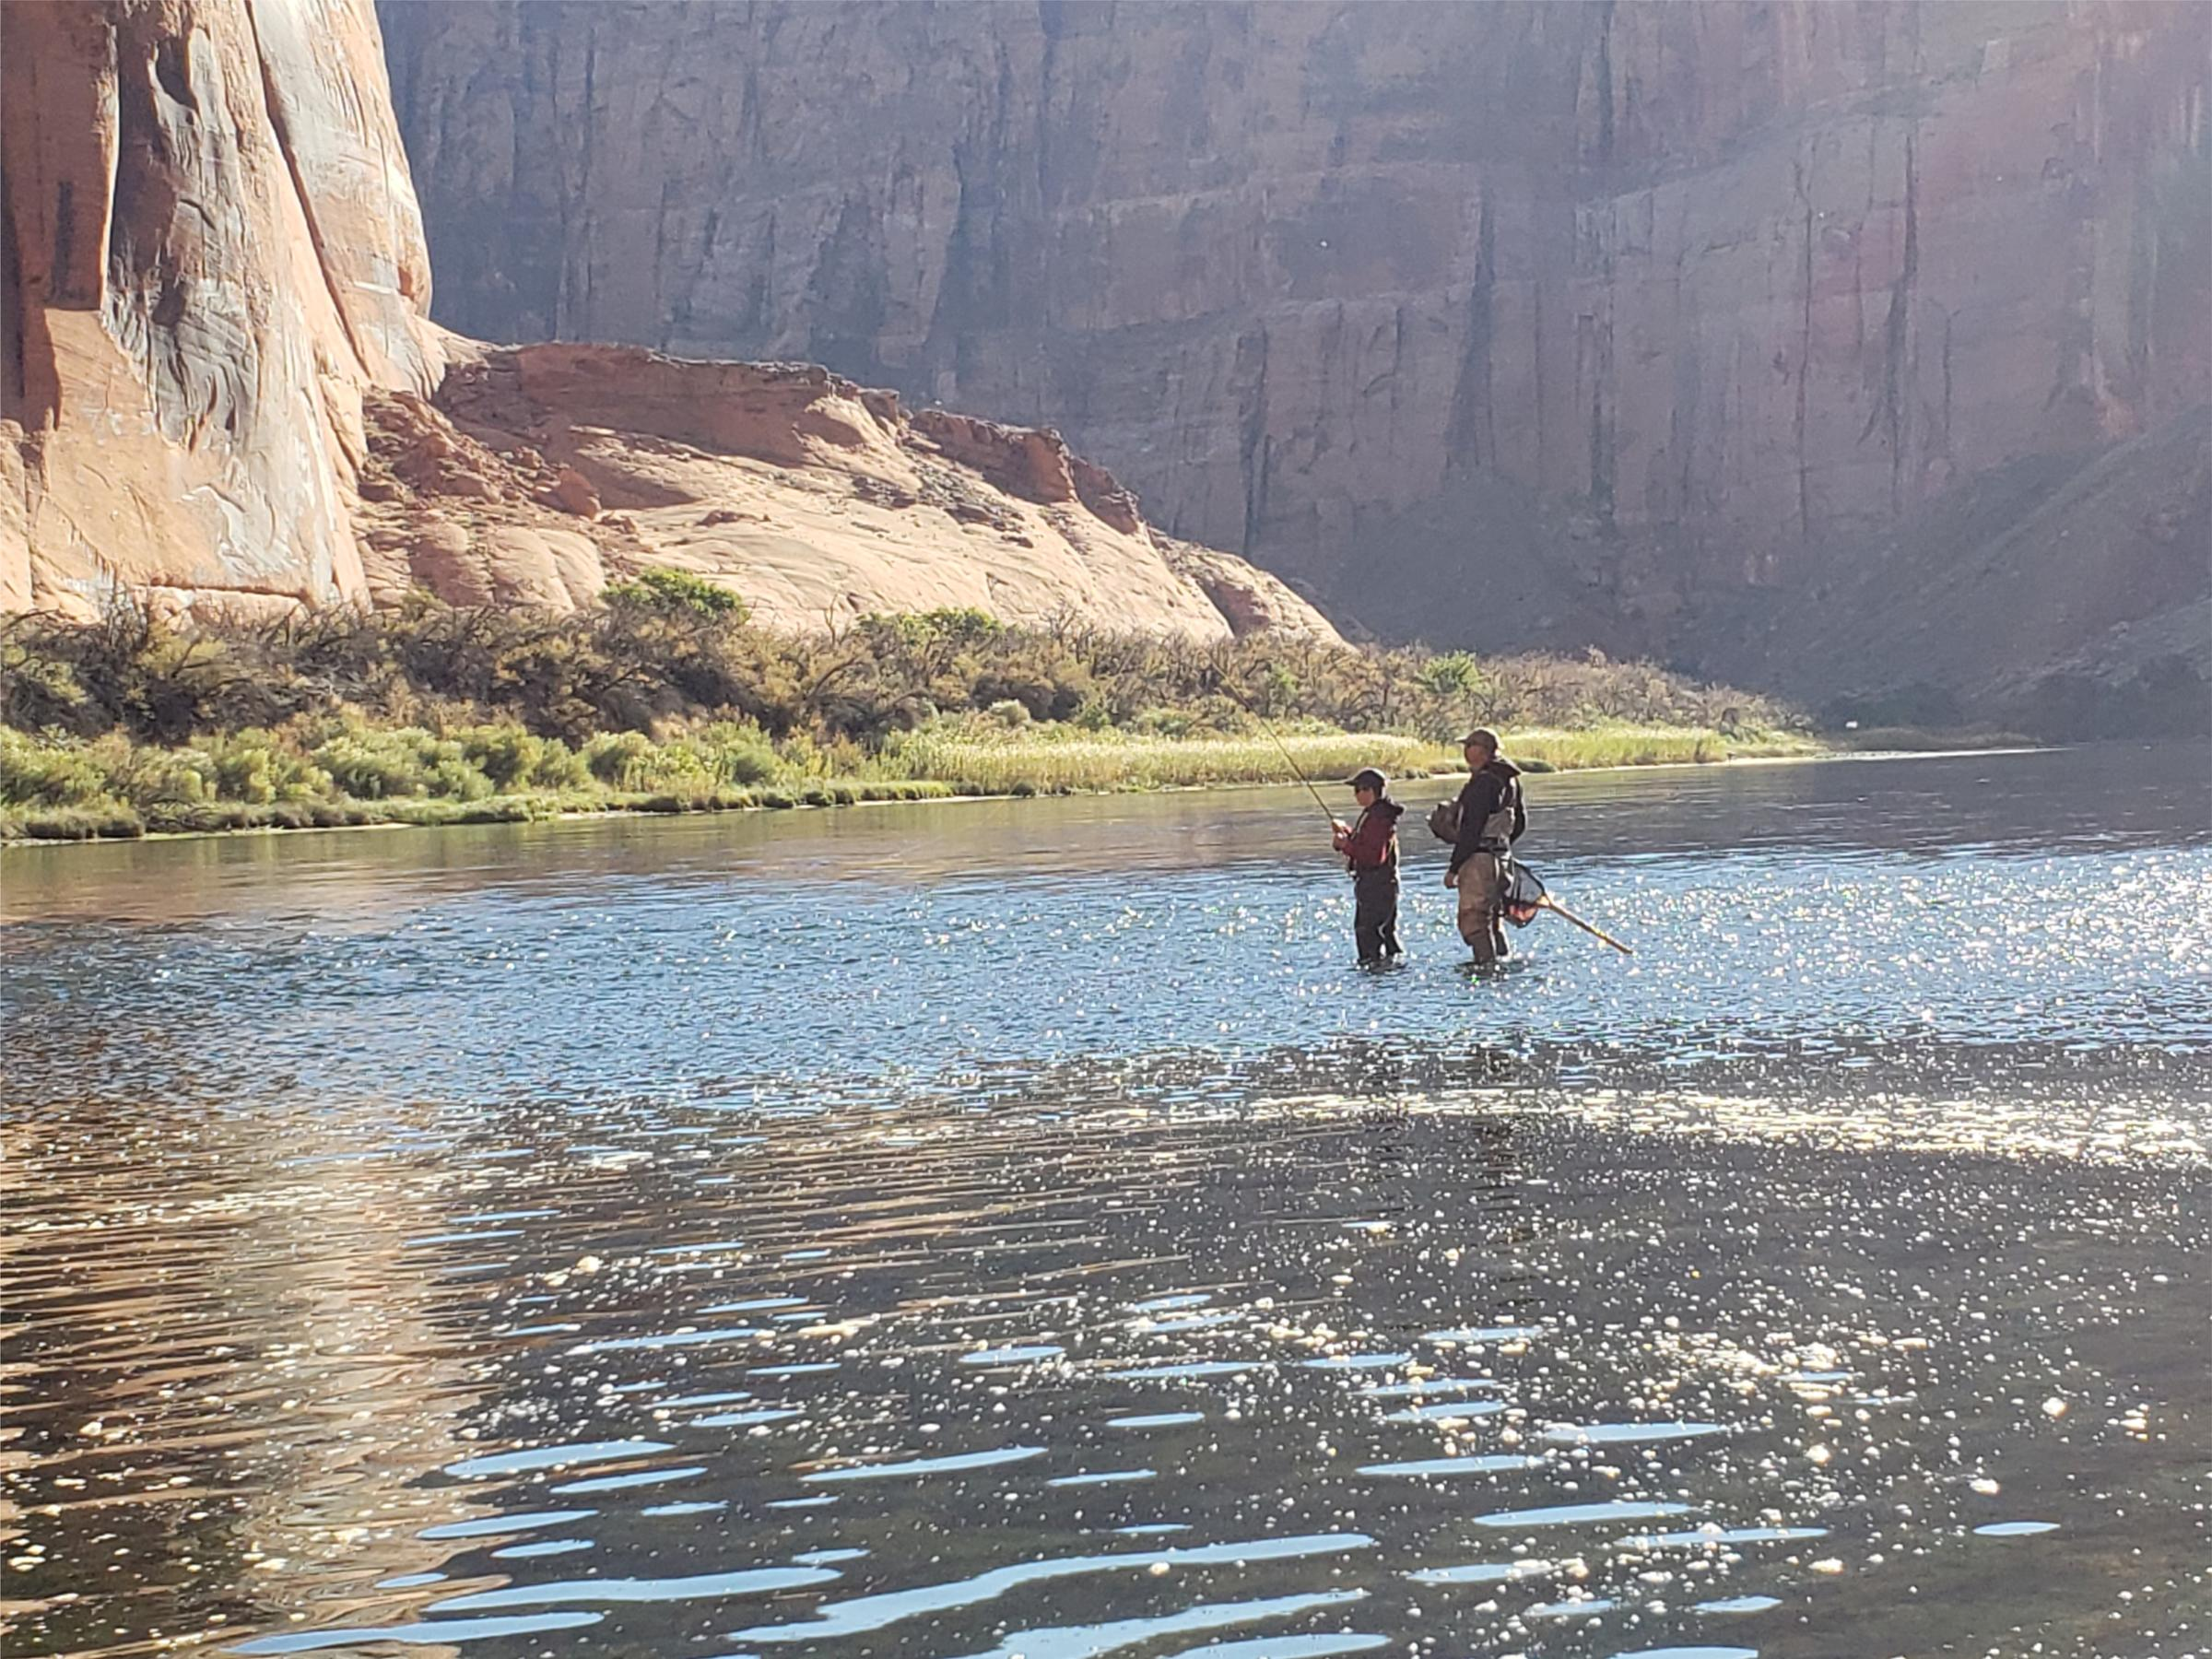 Two people fish Lees Ferry on the Colorado River